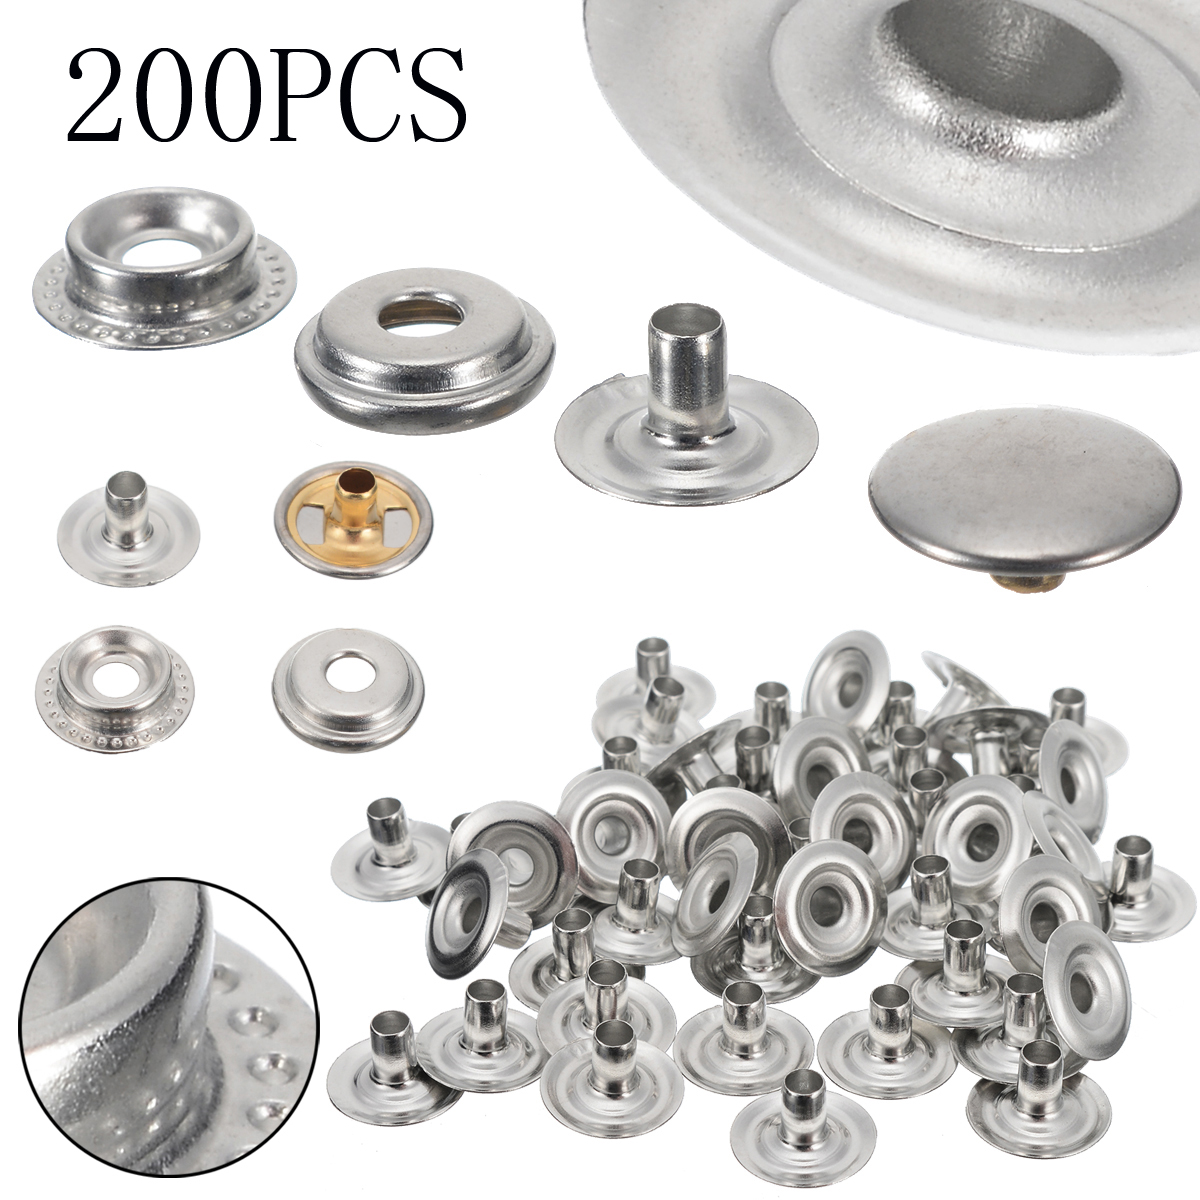 For Snap Fasteners Tent Boat 200Pcs Screw Kits Cap Screws Marine Silver 15mm